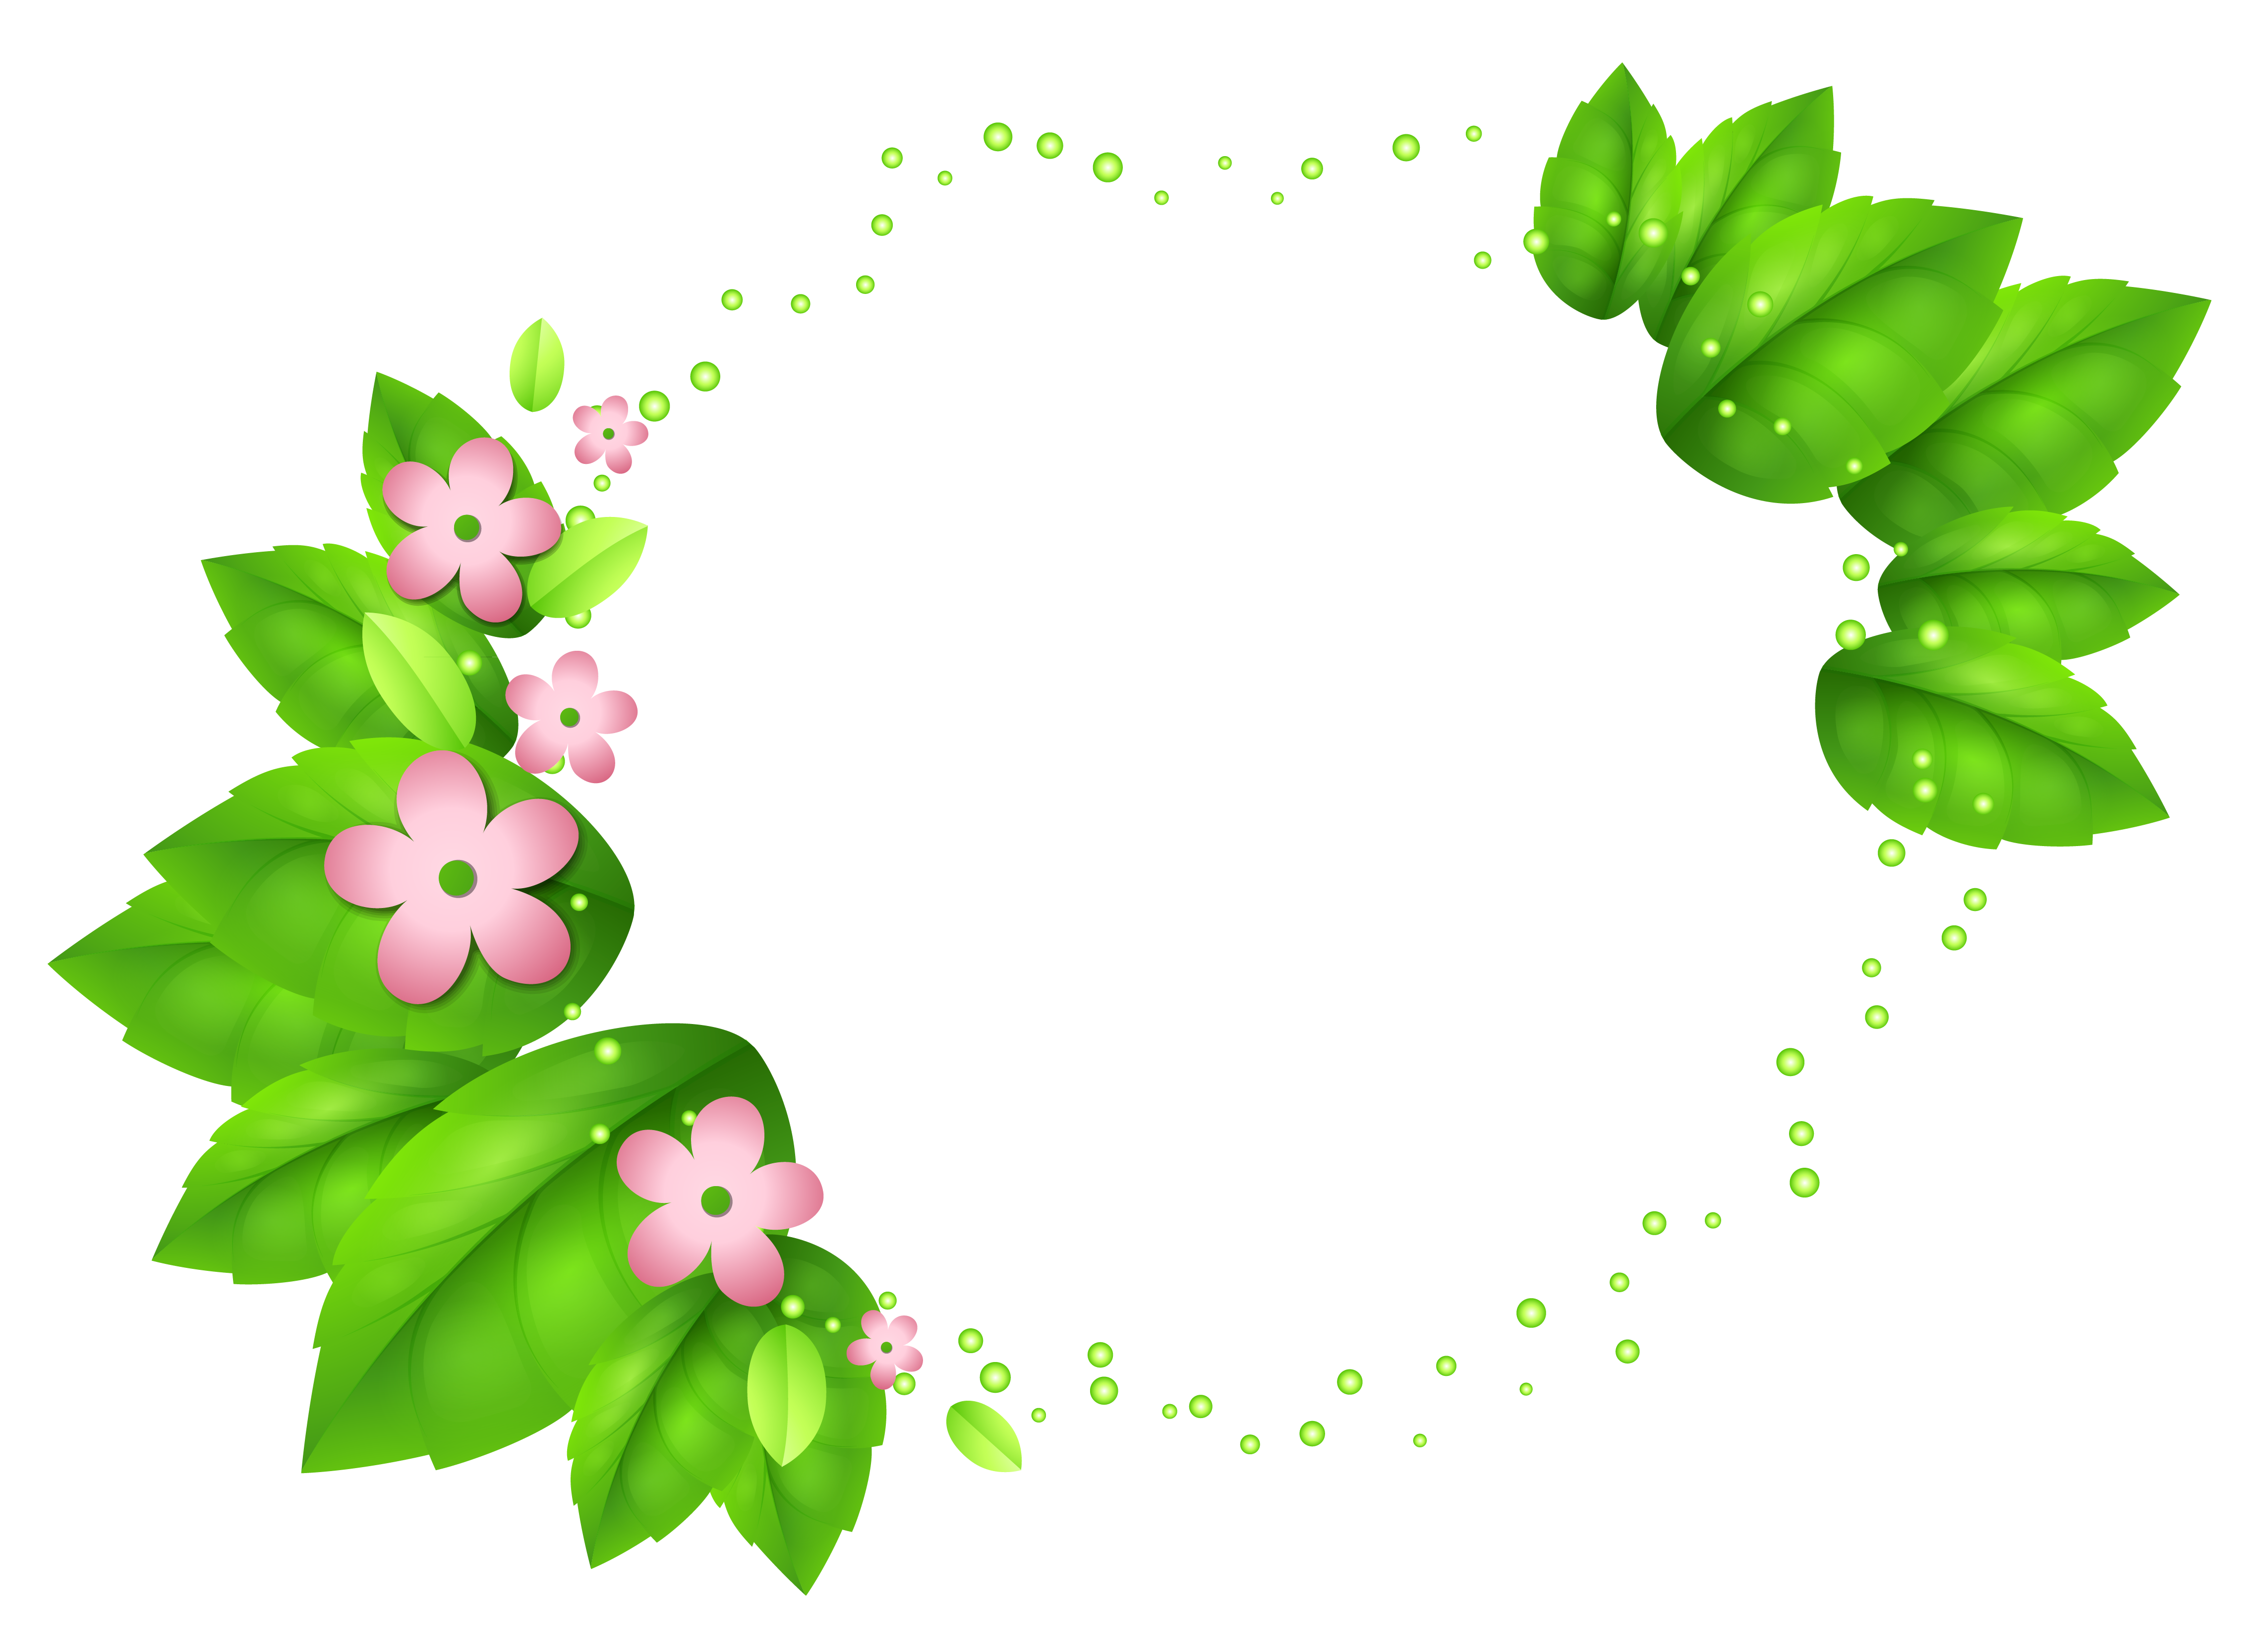 Ivy flower clipart image transparent Green Spring Decor with Pink Flowers | Gallery Yopriceville - High ... image transparent